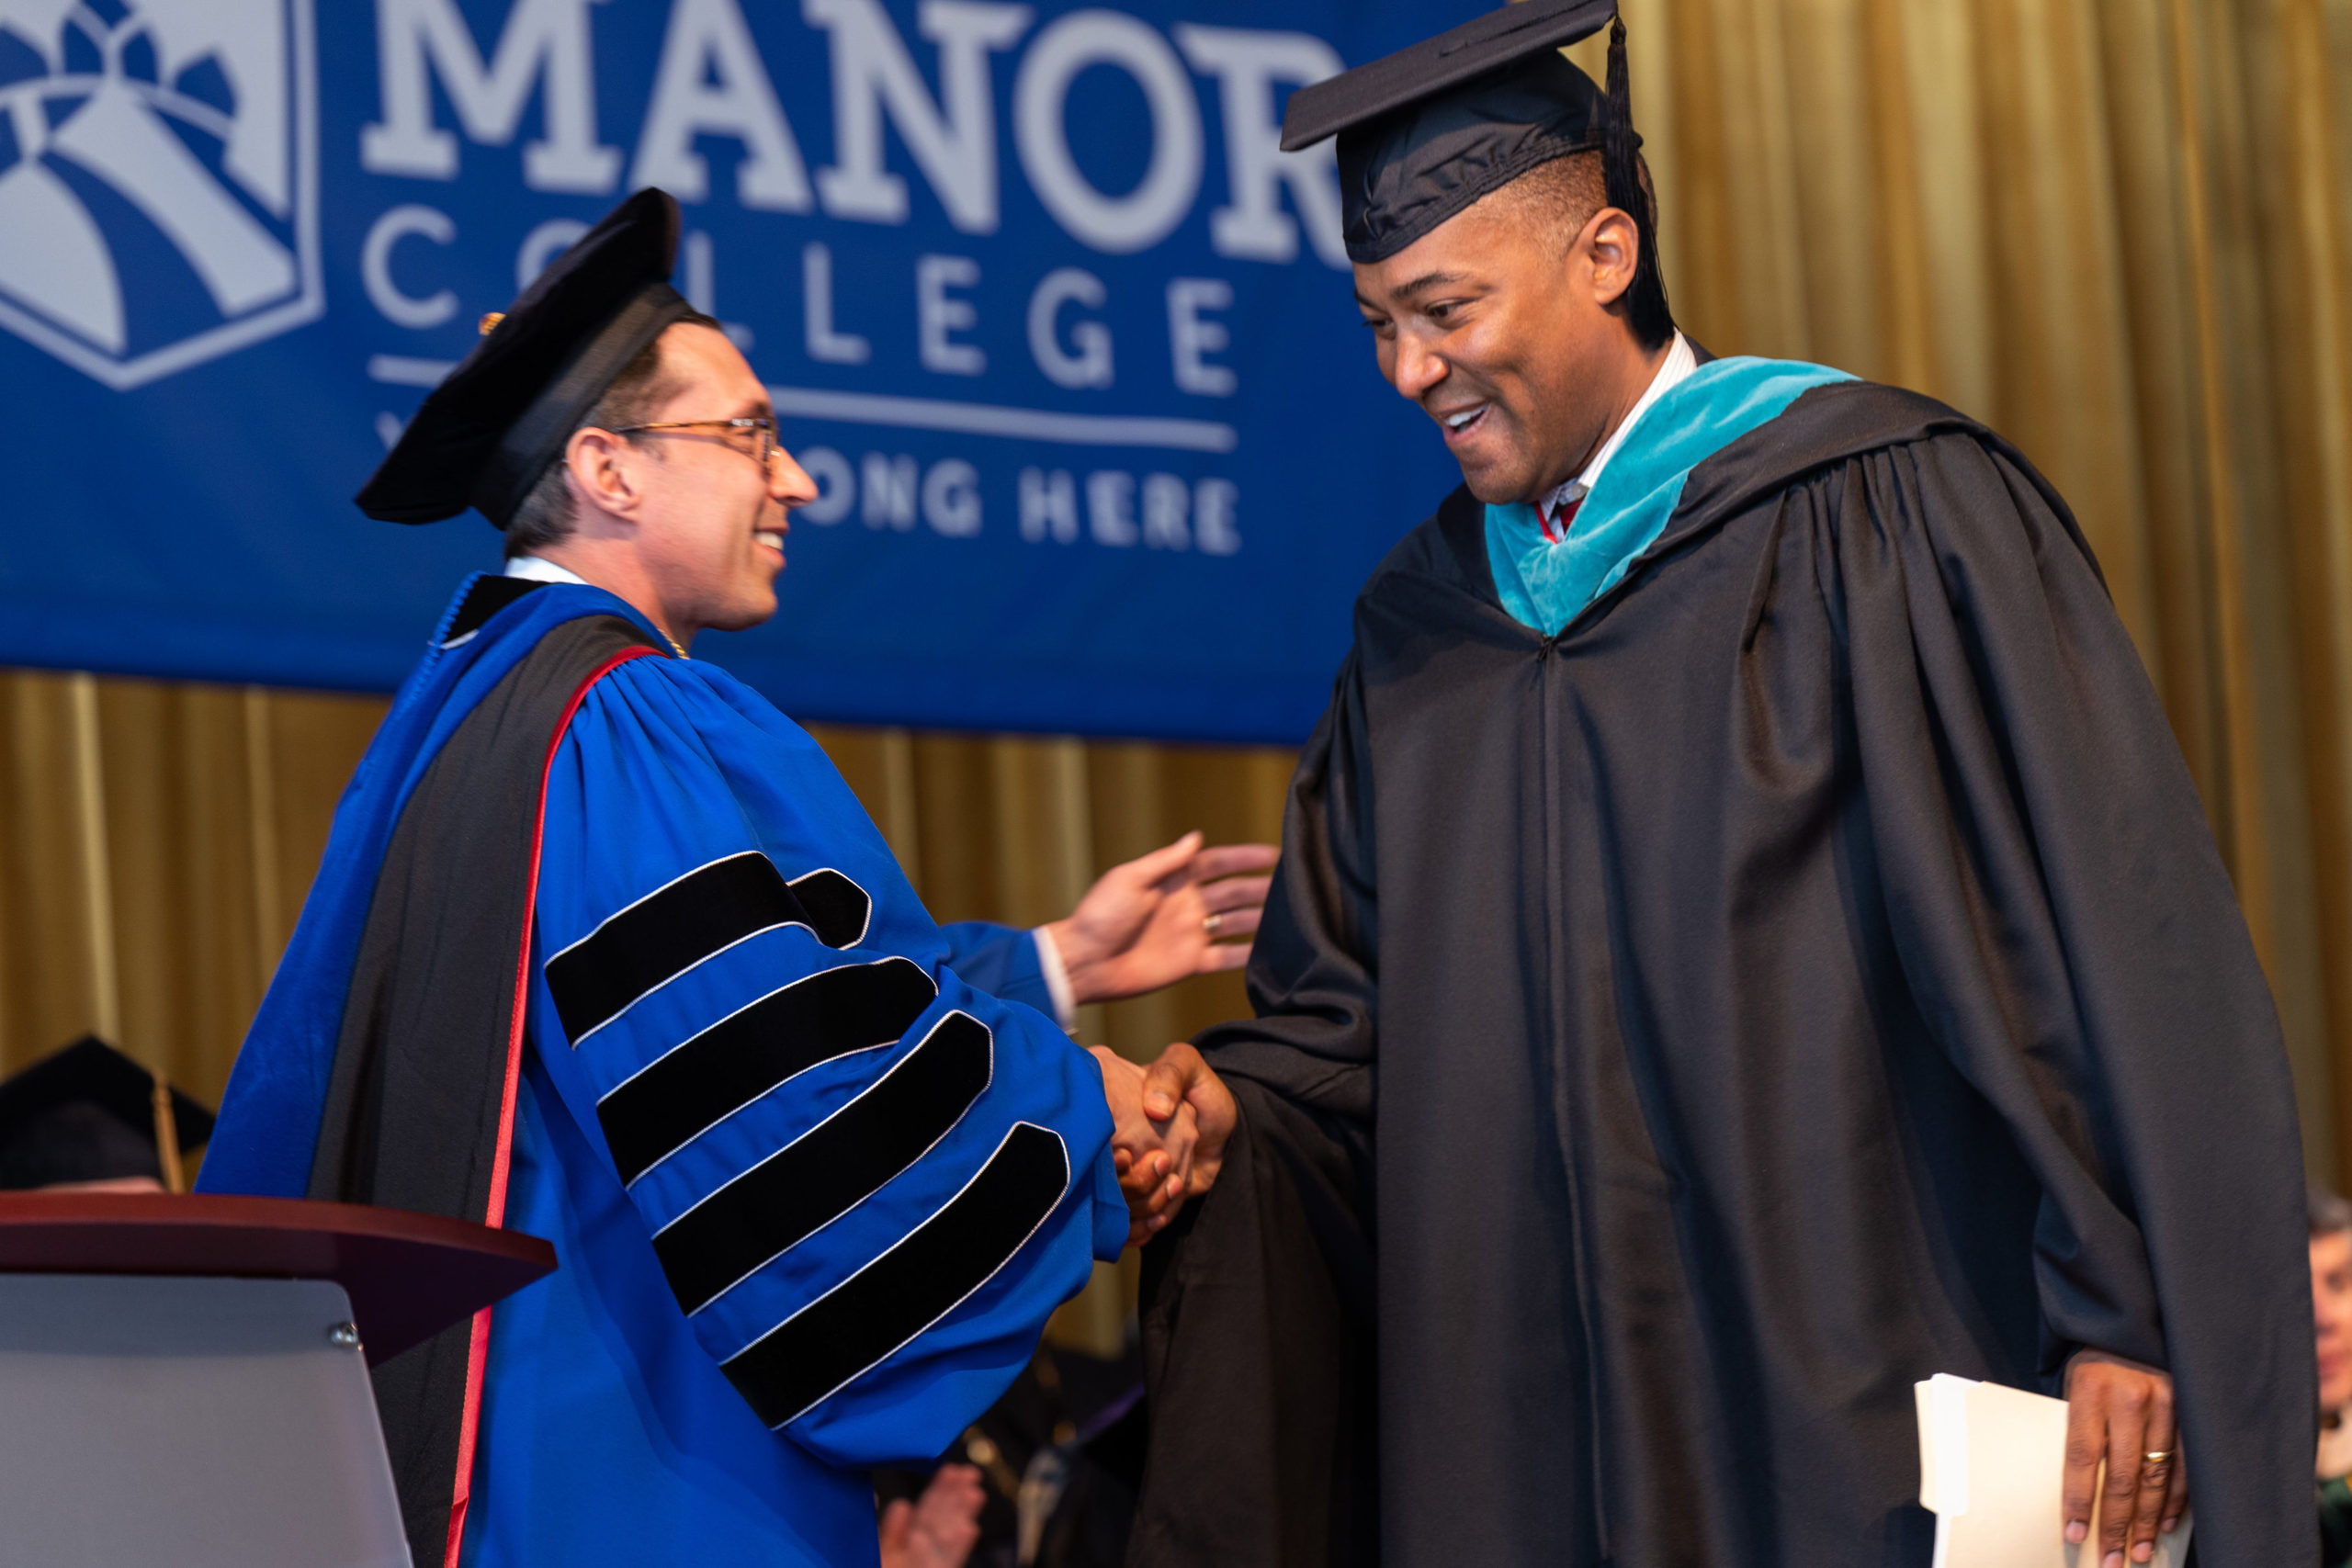 Manor College graduates more than 100 in 2019 Commencement Ceremony